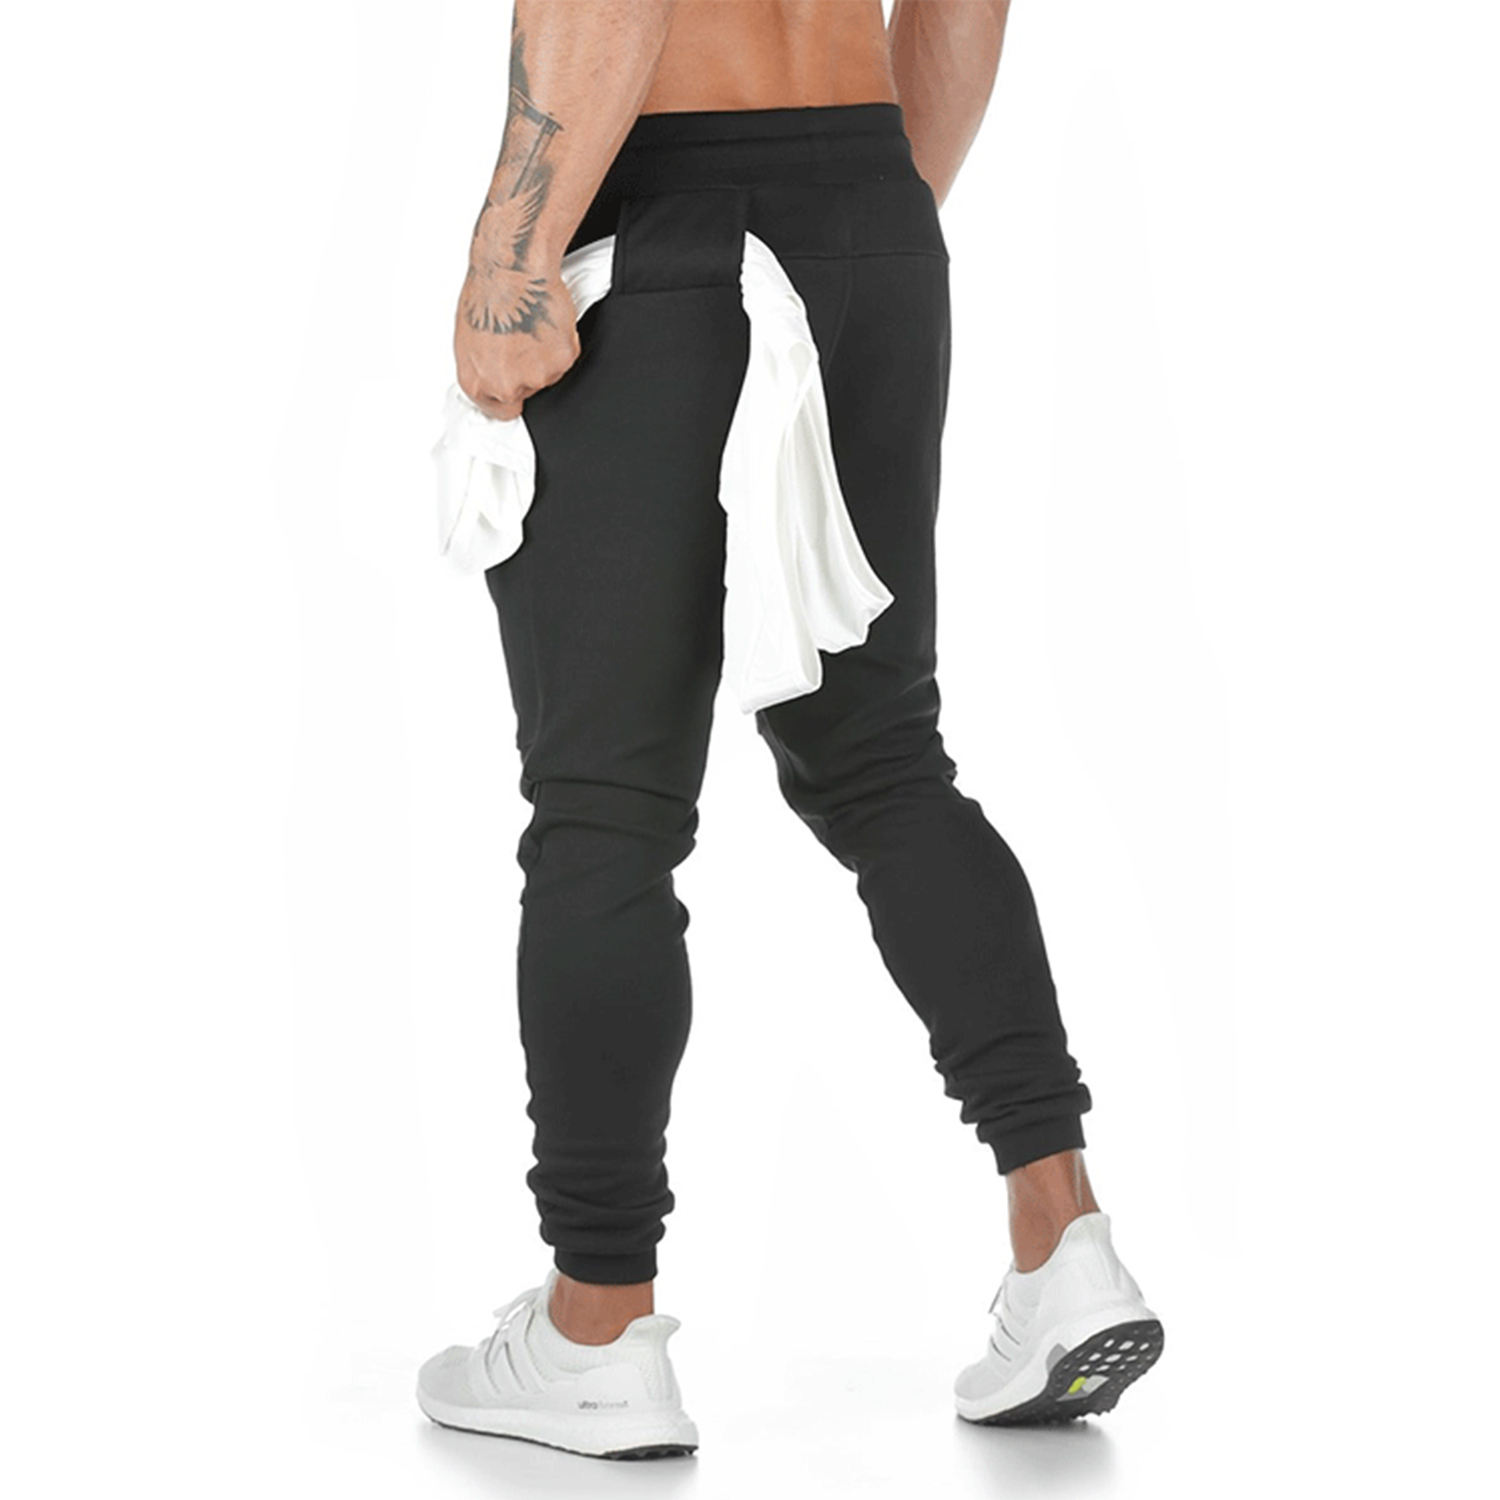 Wholesale Custom Cotton Sport Premium Jogger Sweatpants Slim Fit Pants With Towel Hanging